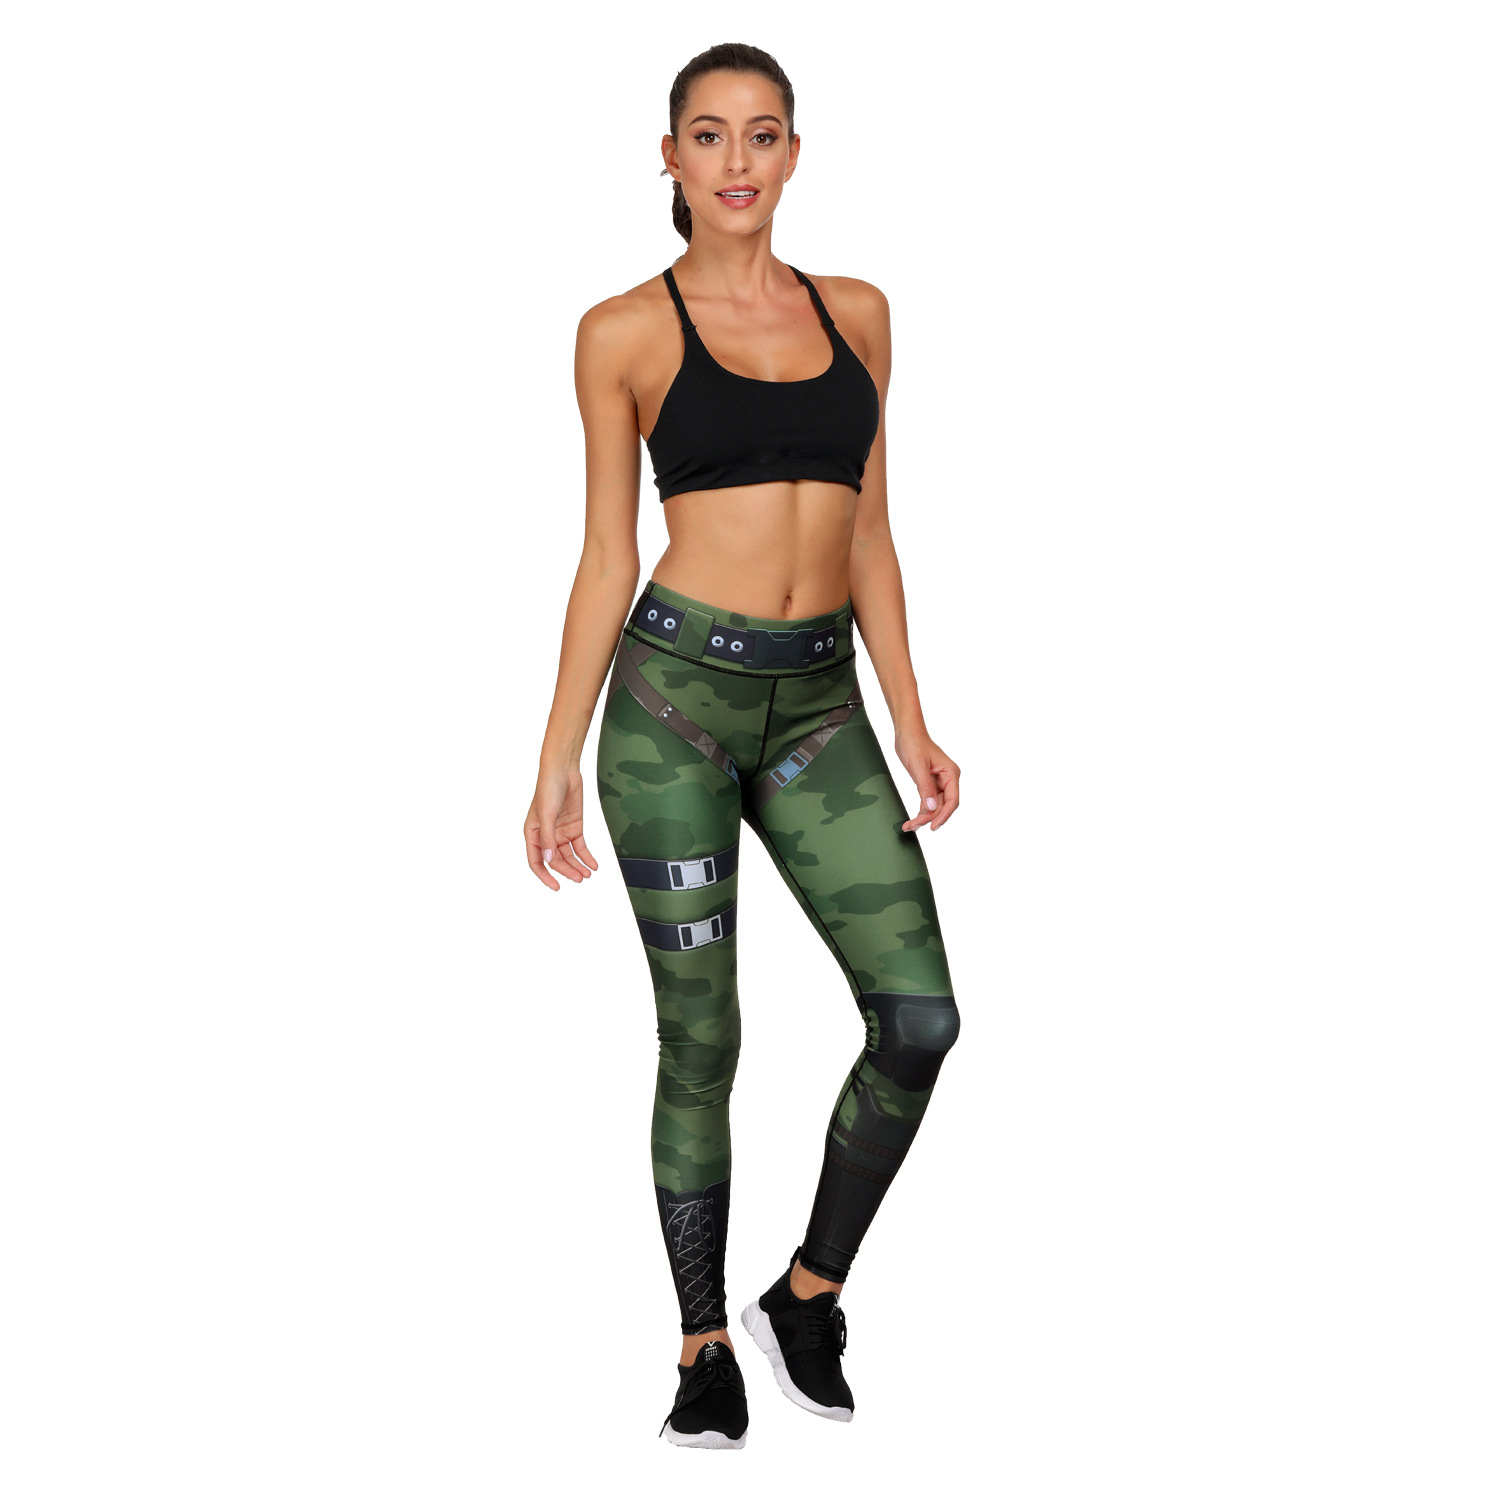 Printed Yoga Pants High Waist Fitness Plus Size Workout Leggings for Women Yoga Gym Atheletic Pants, Small Order, Stocklots,CAMO AOP